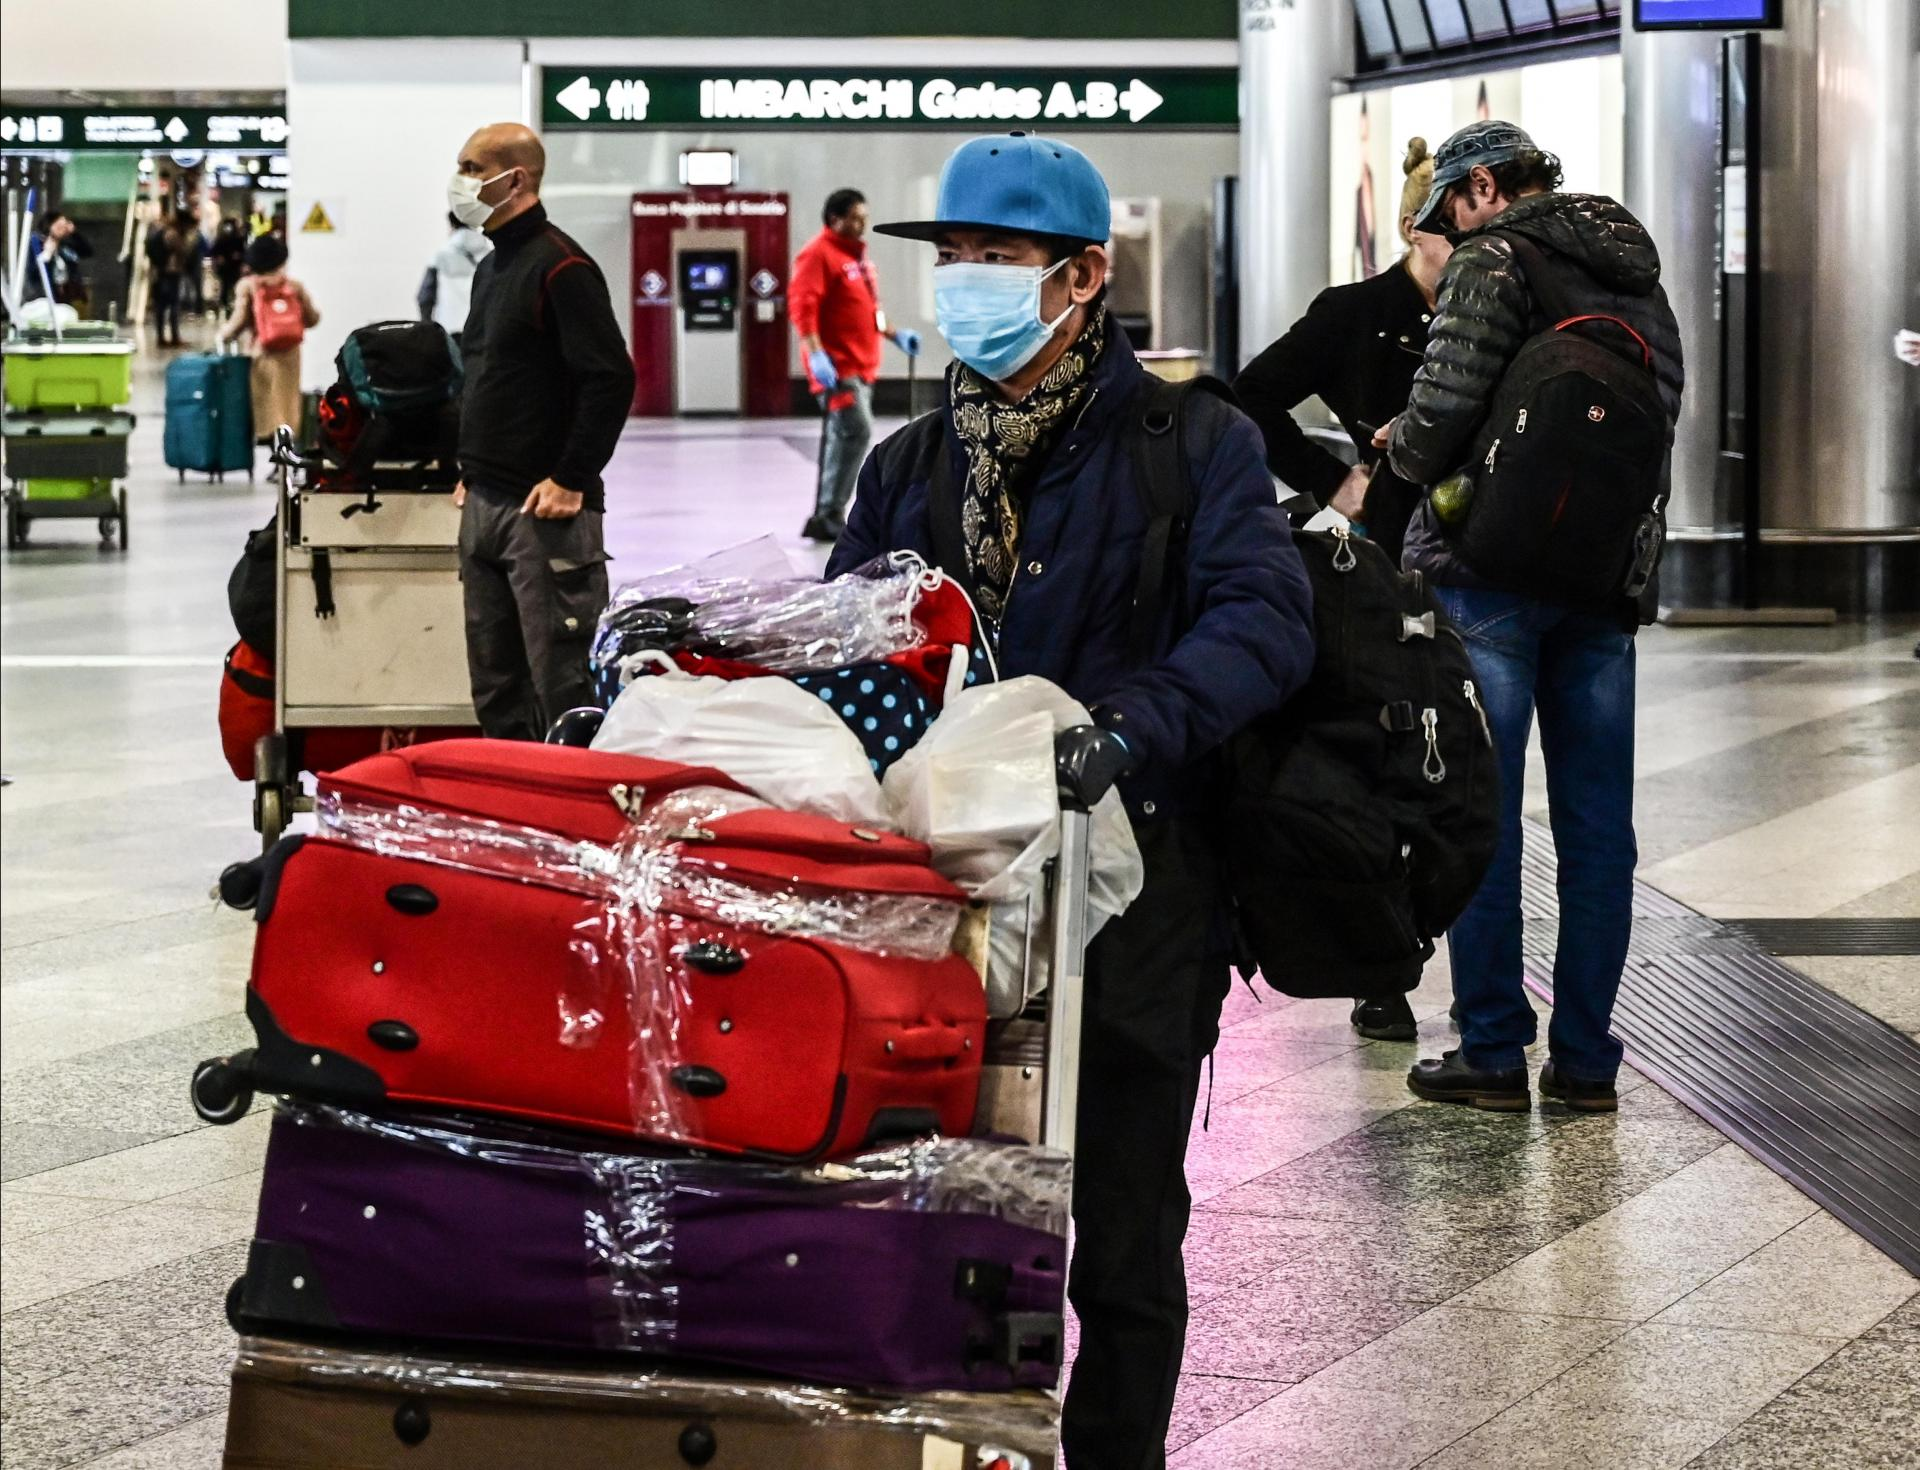 A passenger wearing a respiratory mask goes to check in at a terminal of Milan-Malpensa airport. Photo: AFP